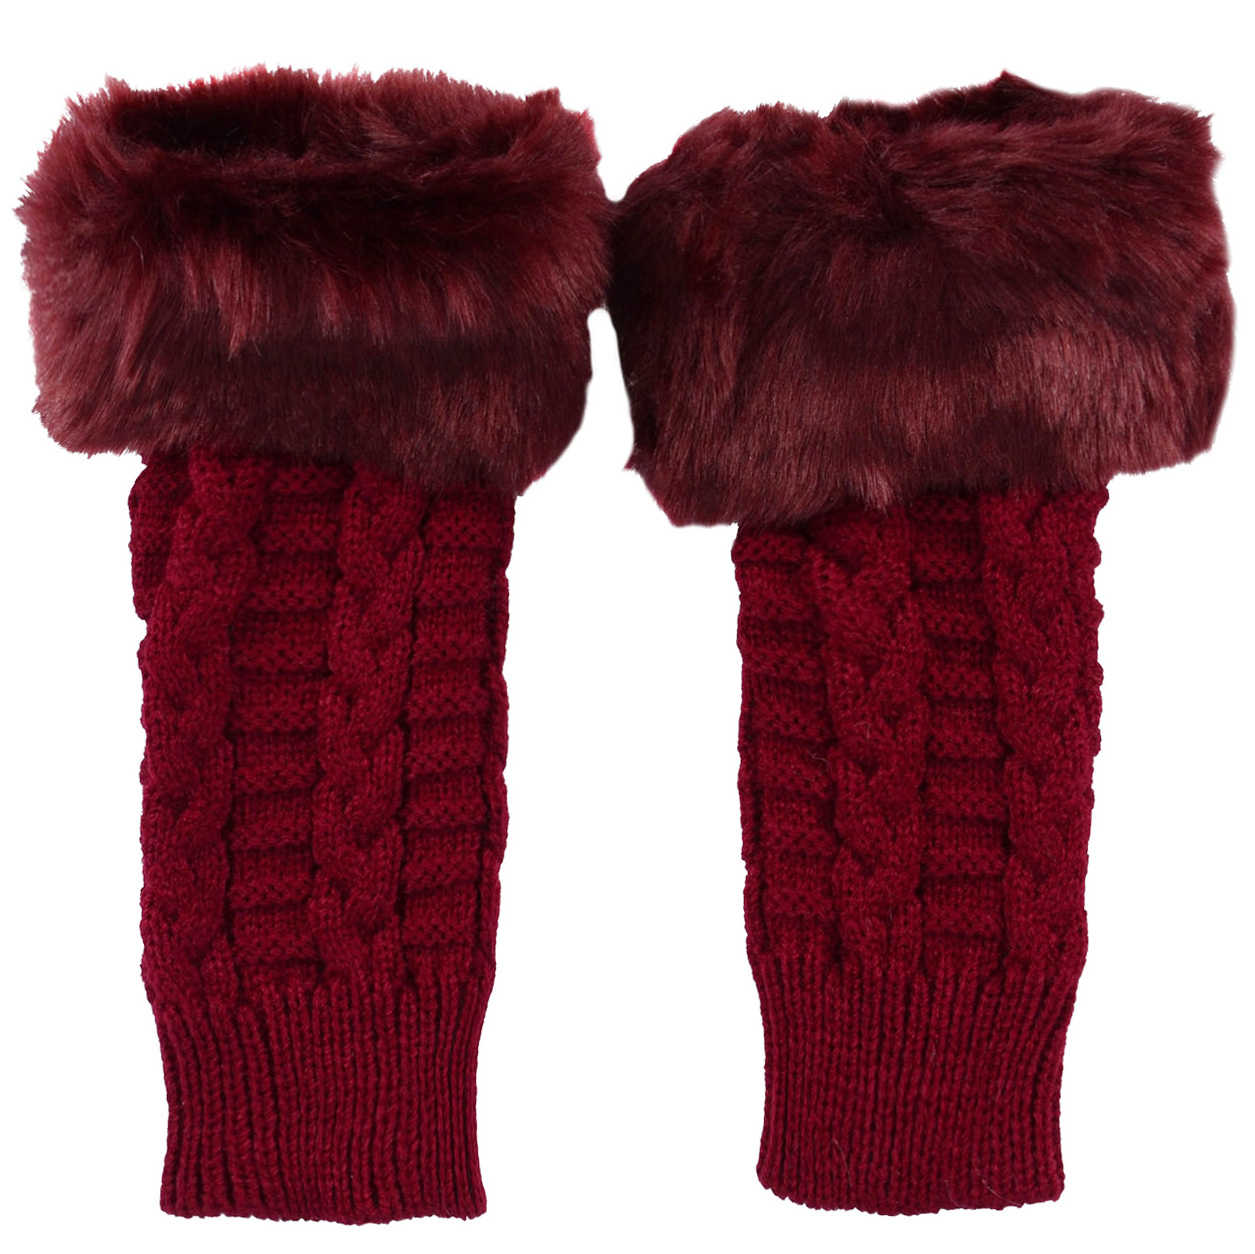 Winter Warmer Women Faux Knitted Hand Wrist Fingerless Gloves, Red